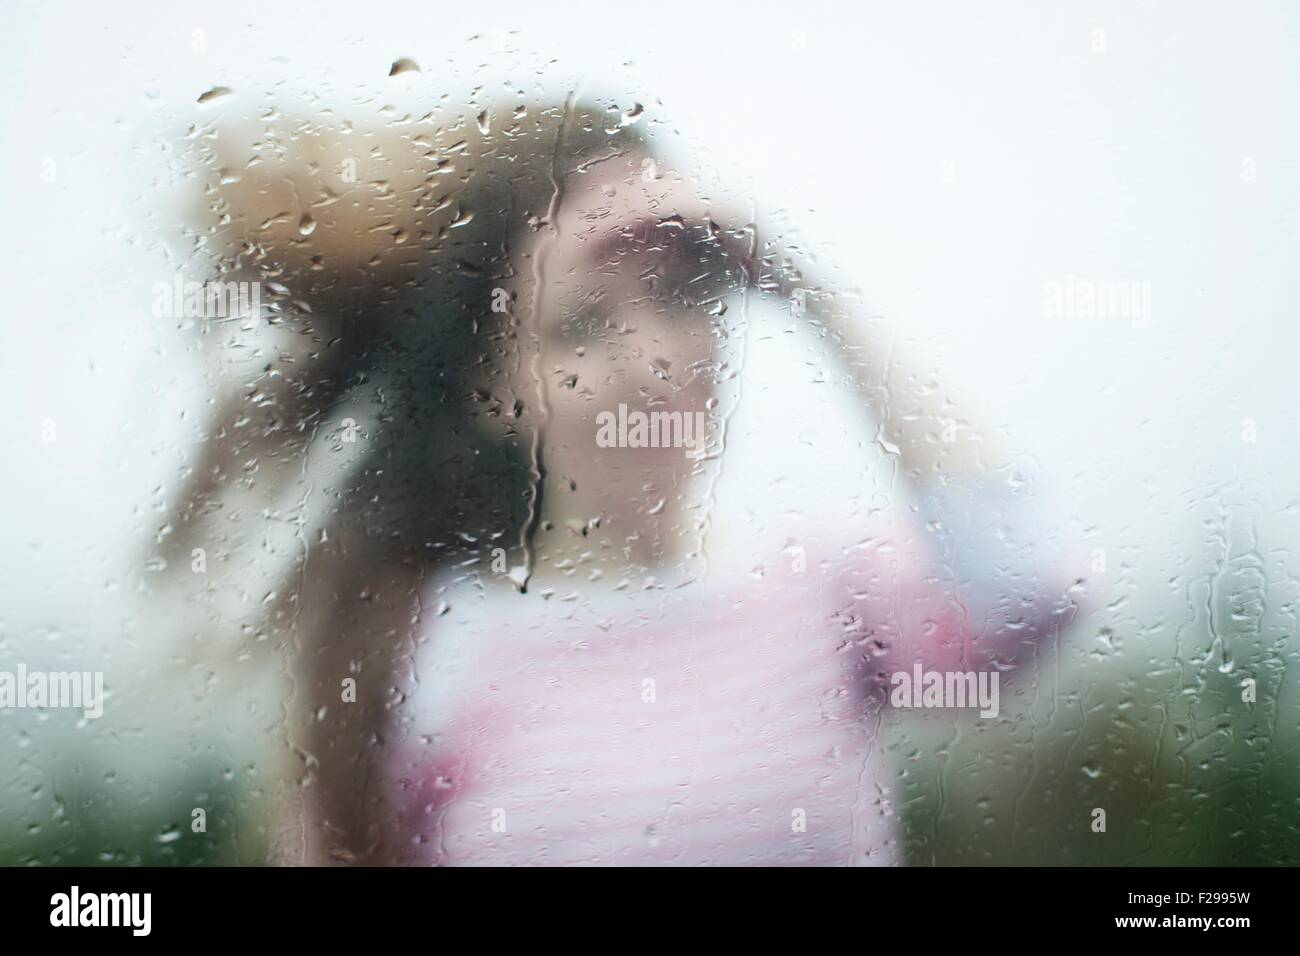 Blurry image of a woman through a rainy window - Stock Image